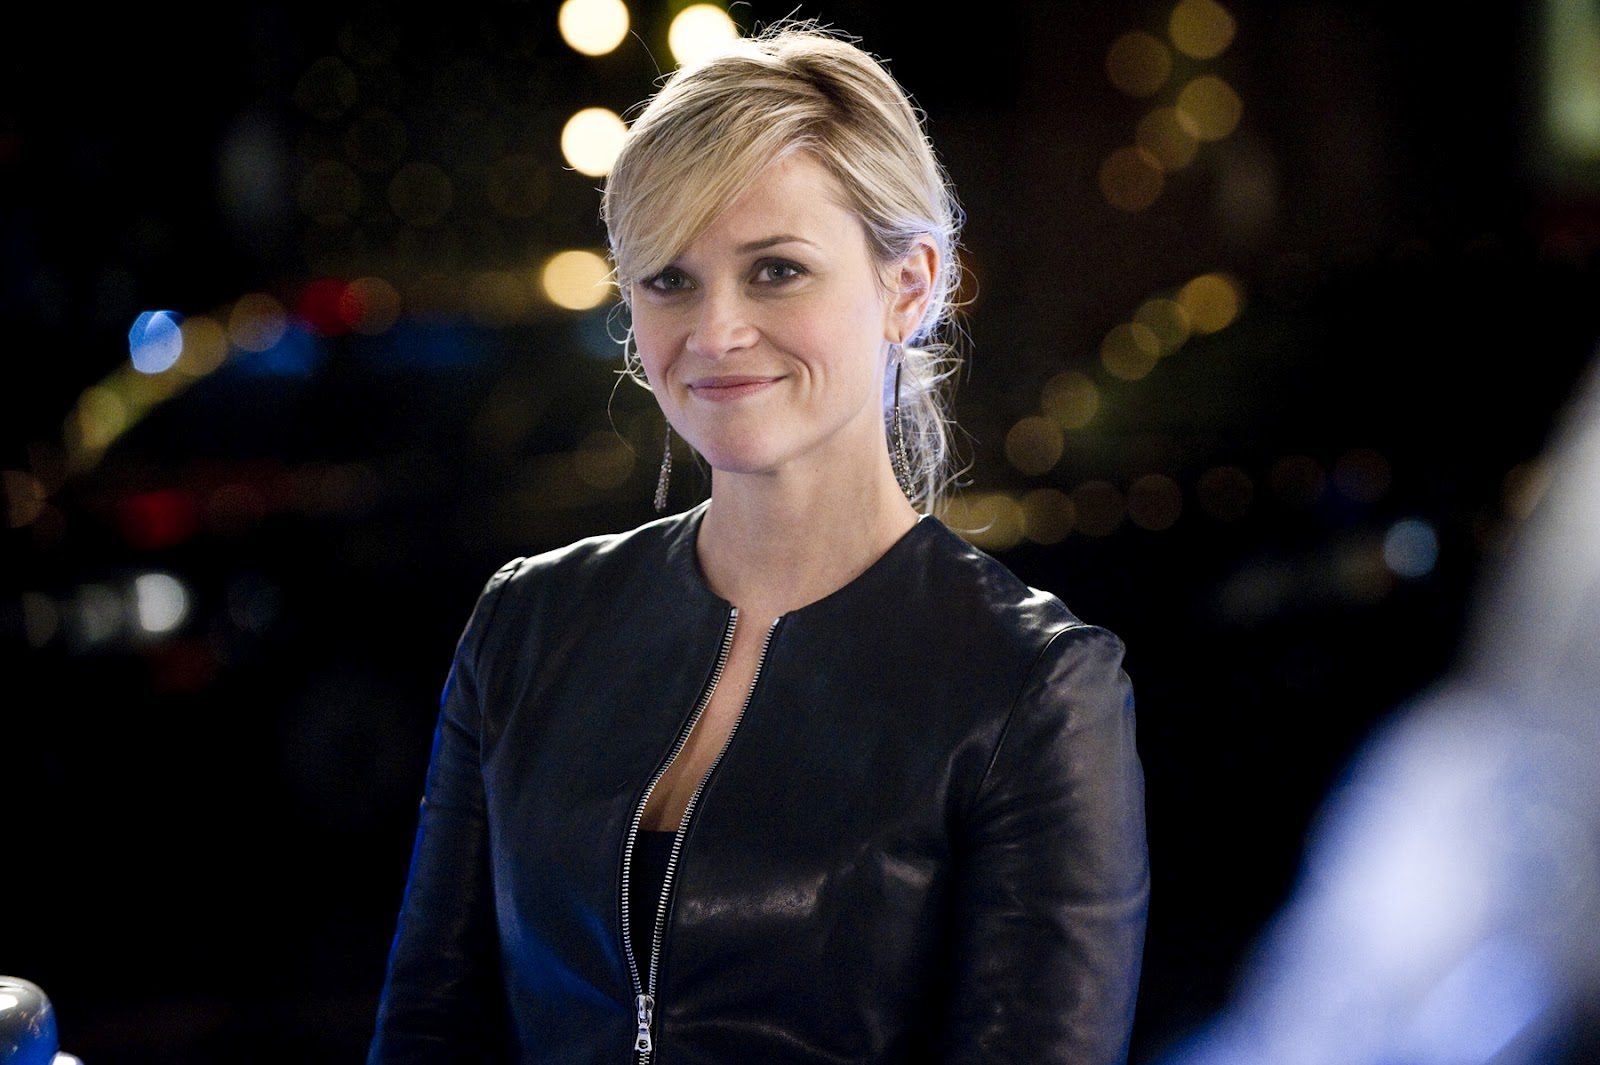 Reese Witherspoon Hair This Means War 6k Pics